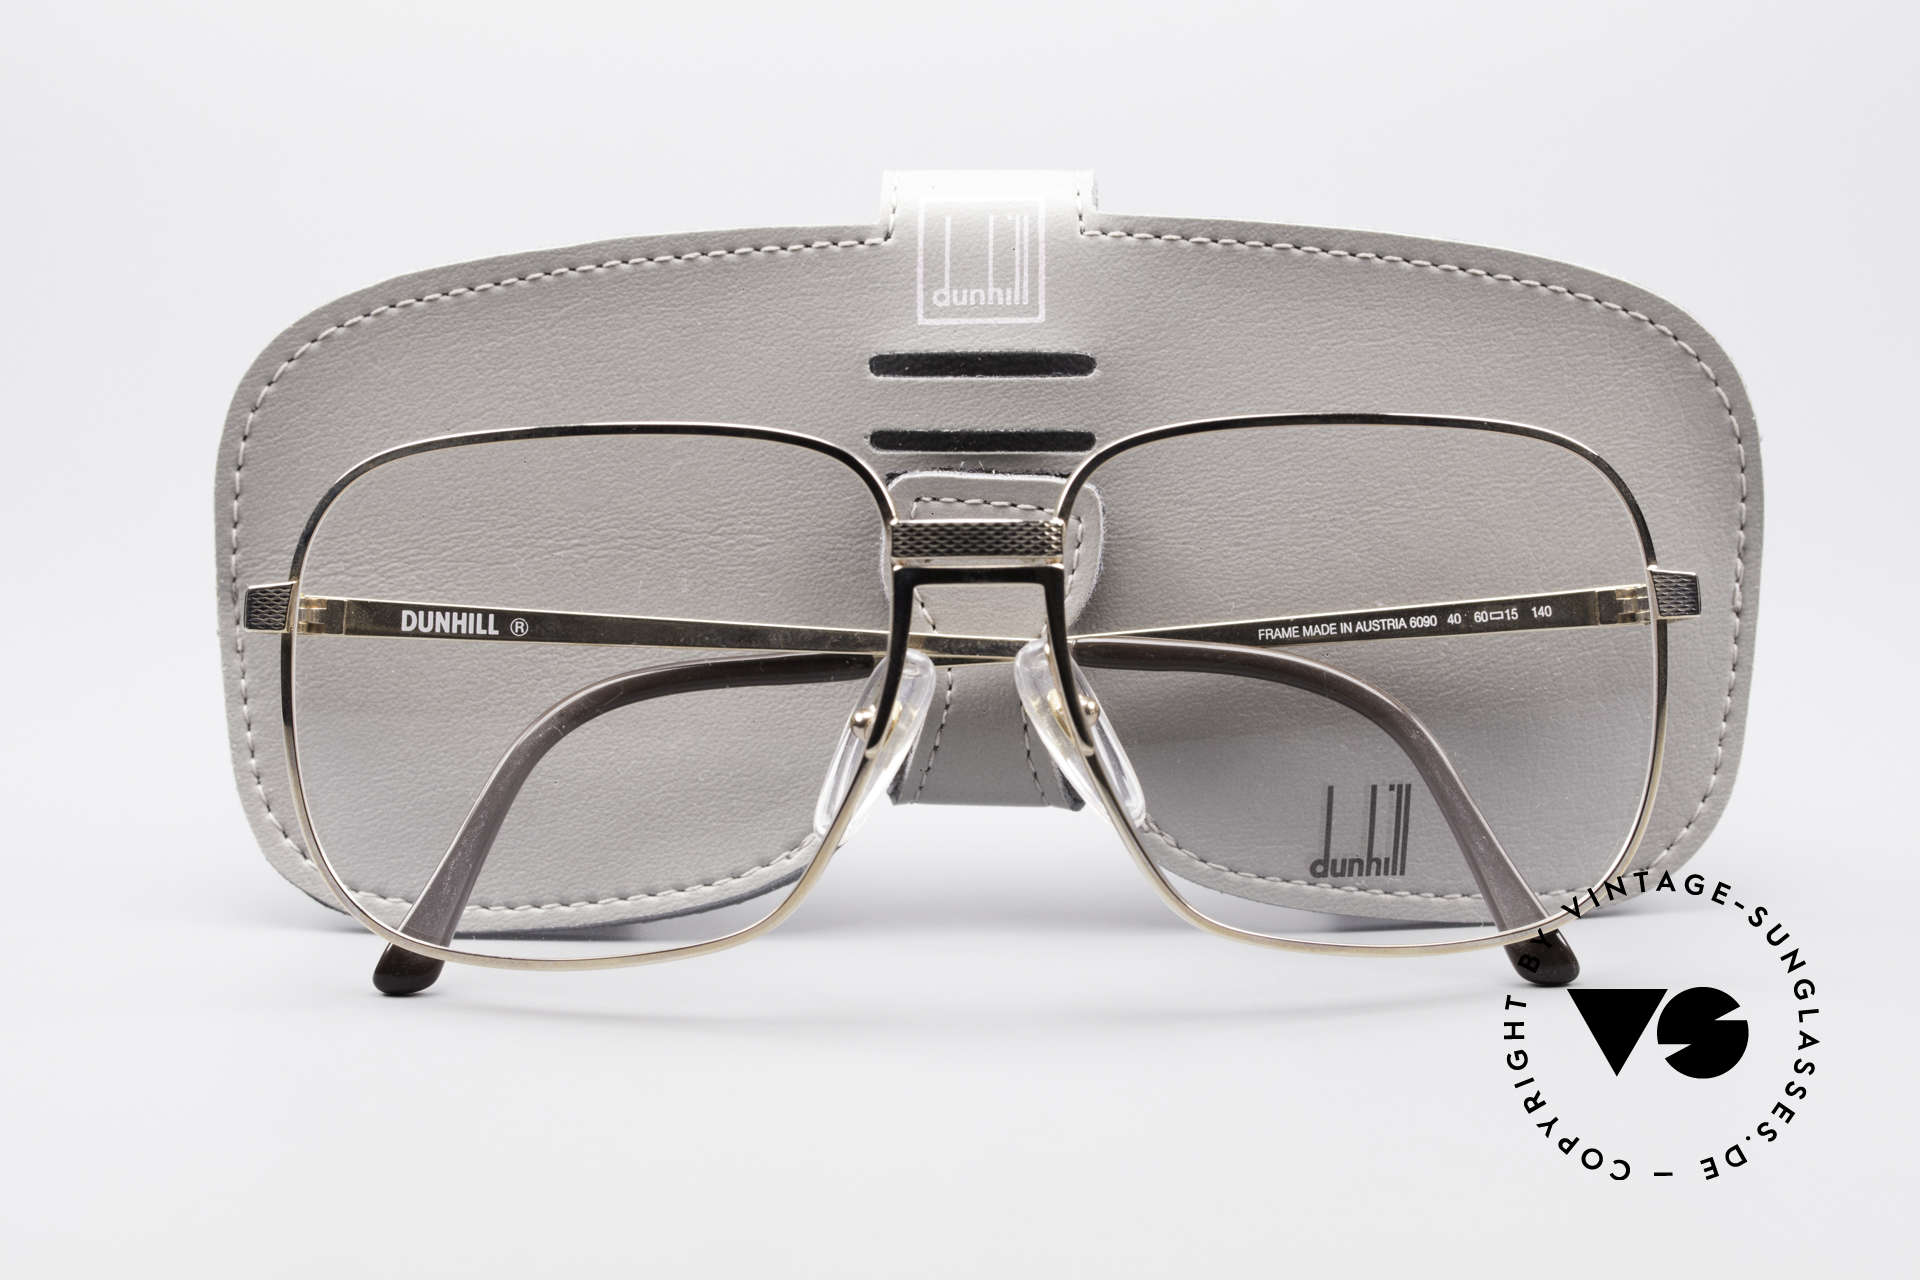 Dunhill 6090 Gold Plated 90's Eyeglasses, NO RETRO frame, but a precious old original from 1990, Made for Men